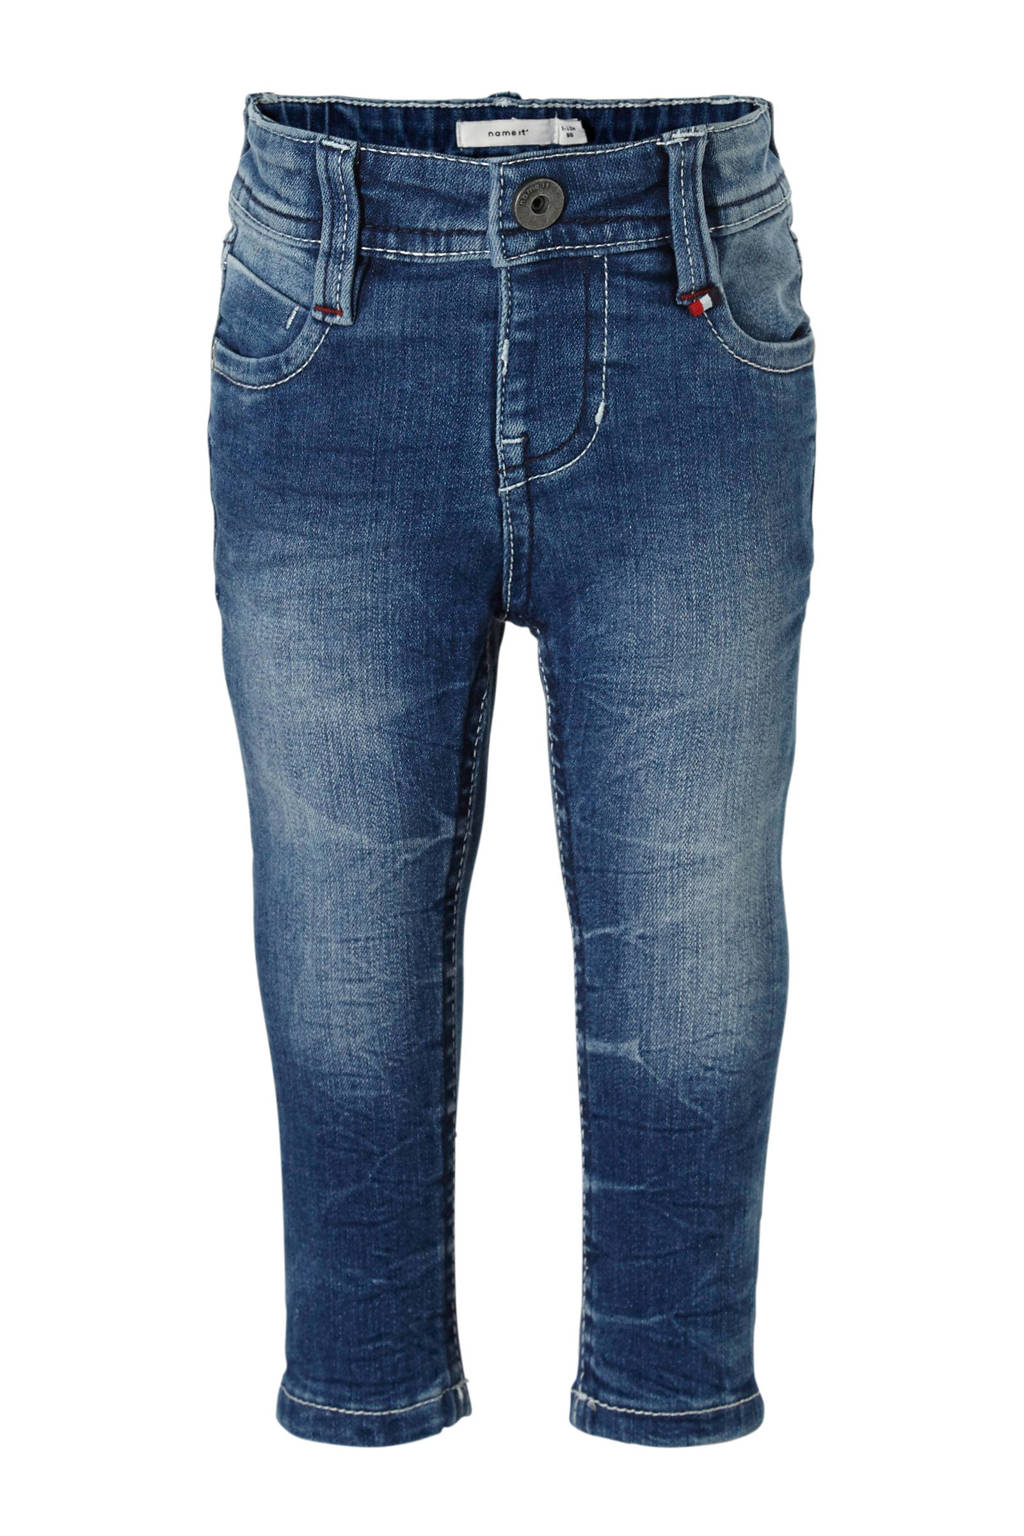 NAME IT MINI slim fit jeans Silas,  Medium Blue Denim